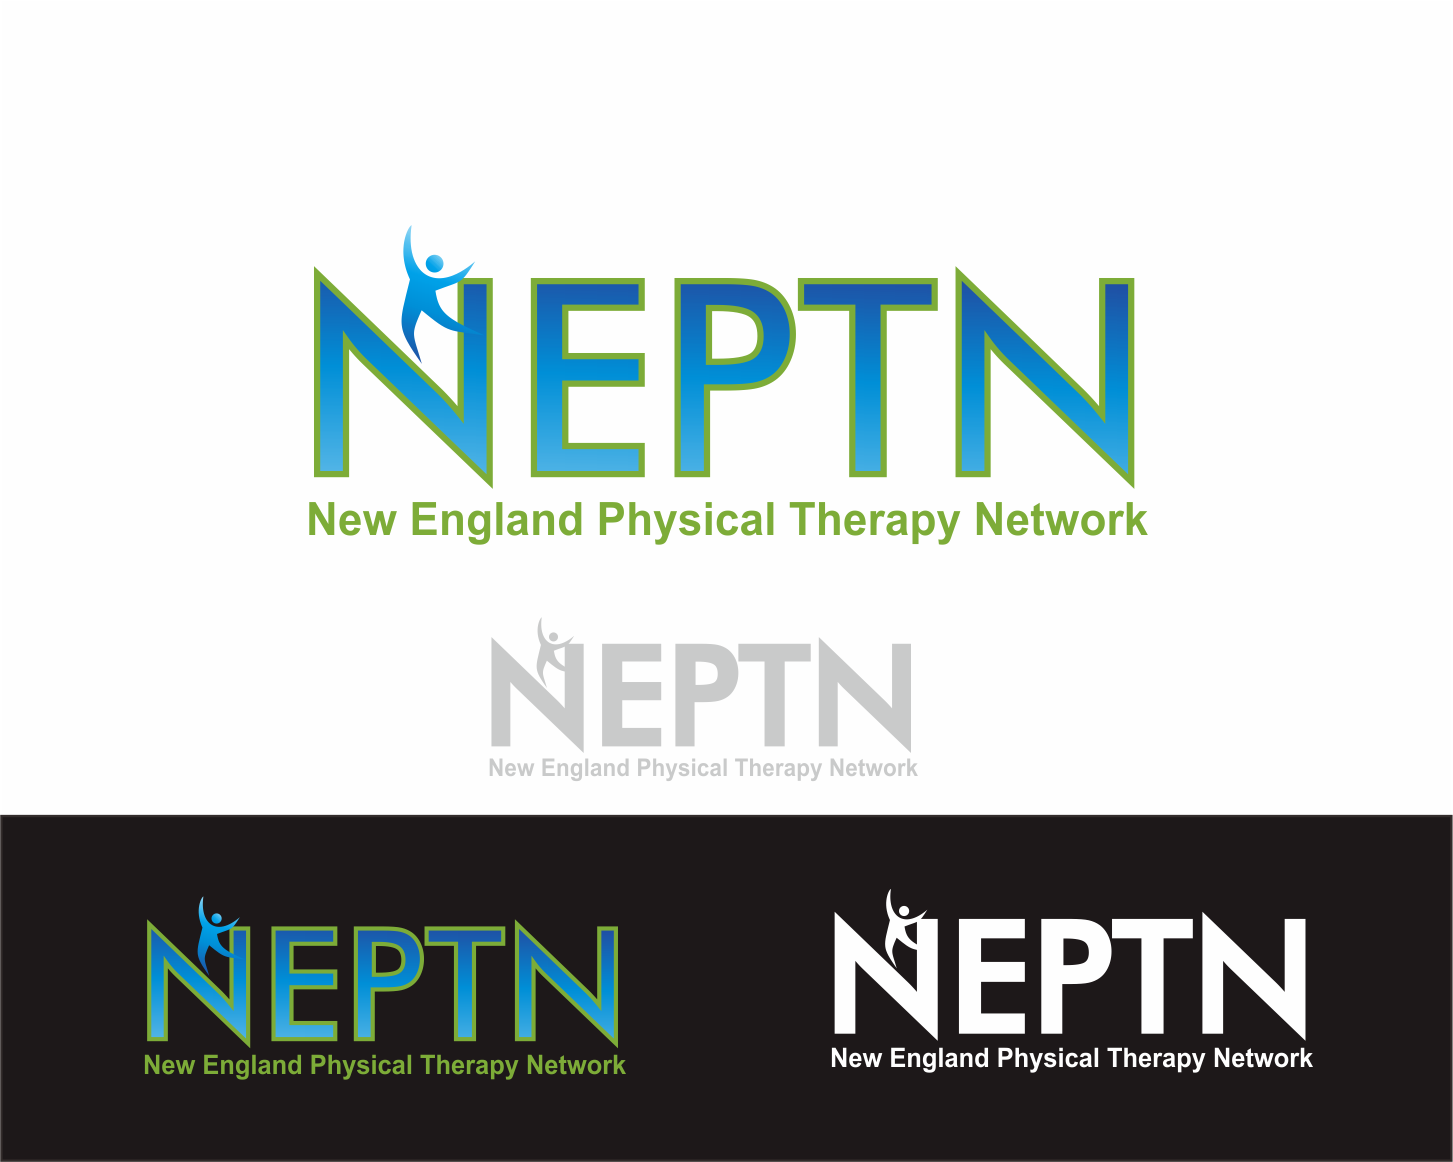 Logo Design by Achmad Zakiyuddin - Entry No. 88 in the Logo Design Contest Fun Logo Design for NEPTN - New England Physical Therapy Network.